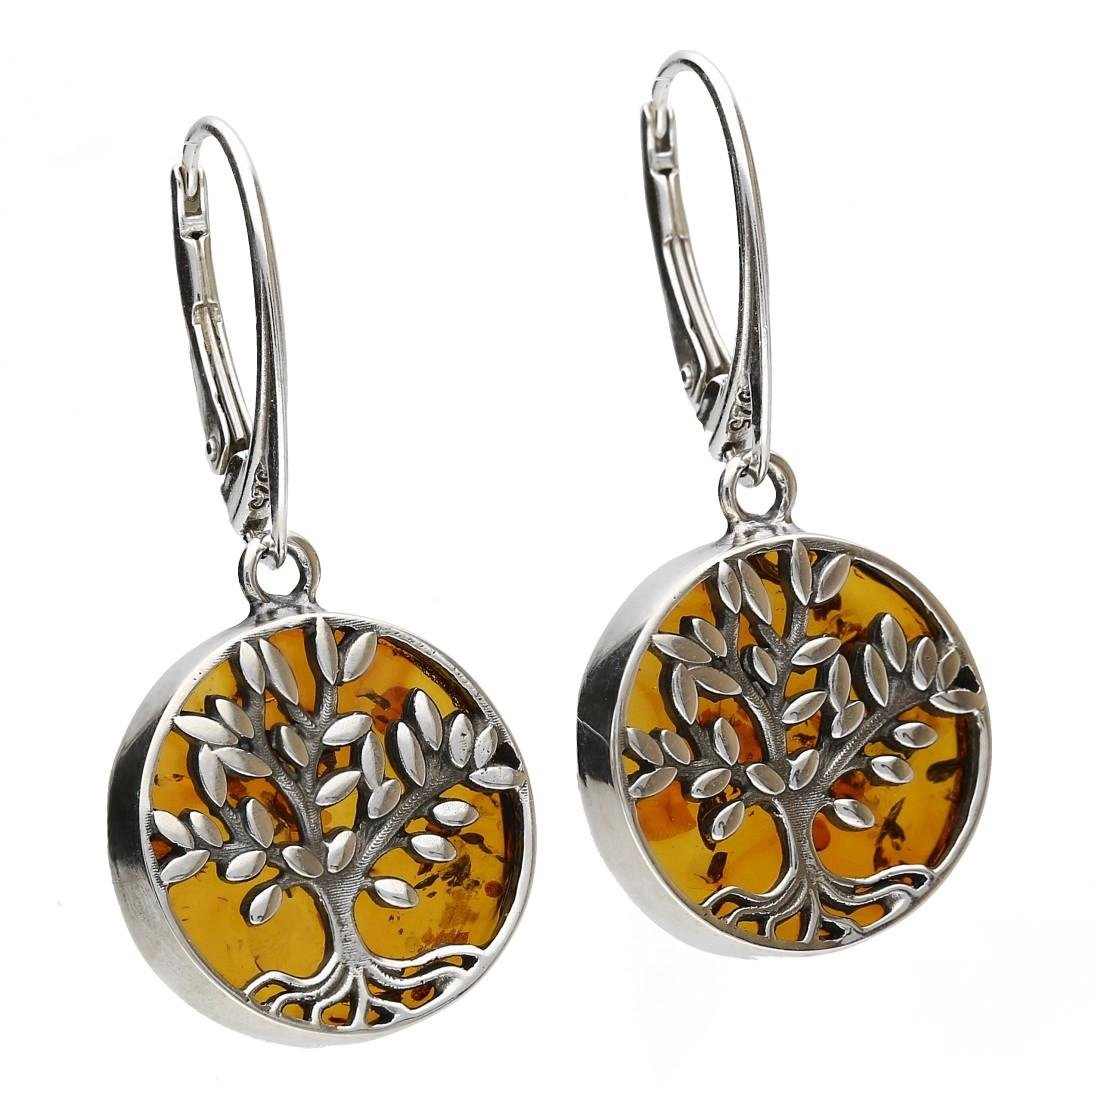 COGNAC BALTIC AMBER STERLING SILVER 925 DANGLE EARRINGS, KAB-274.5